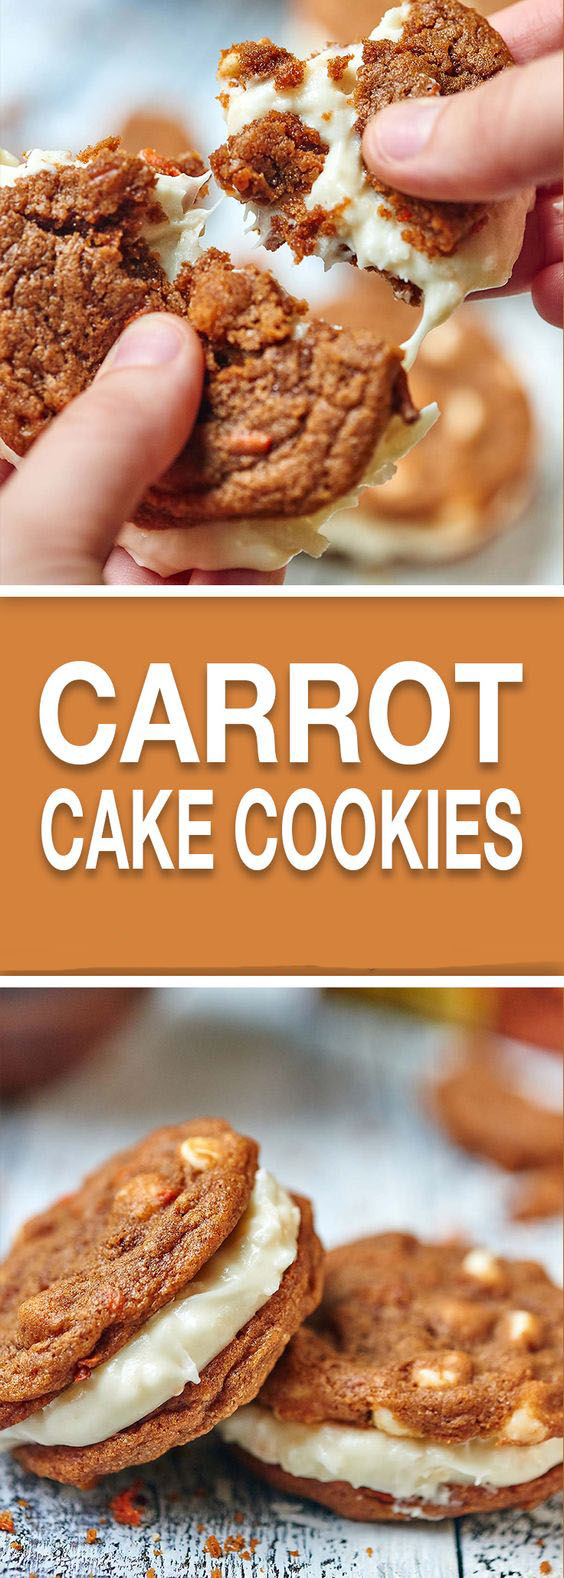 Carrot Cake Cookies With Coconut Cream Cheese Frosting